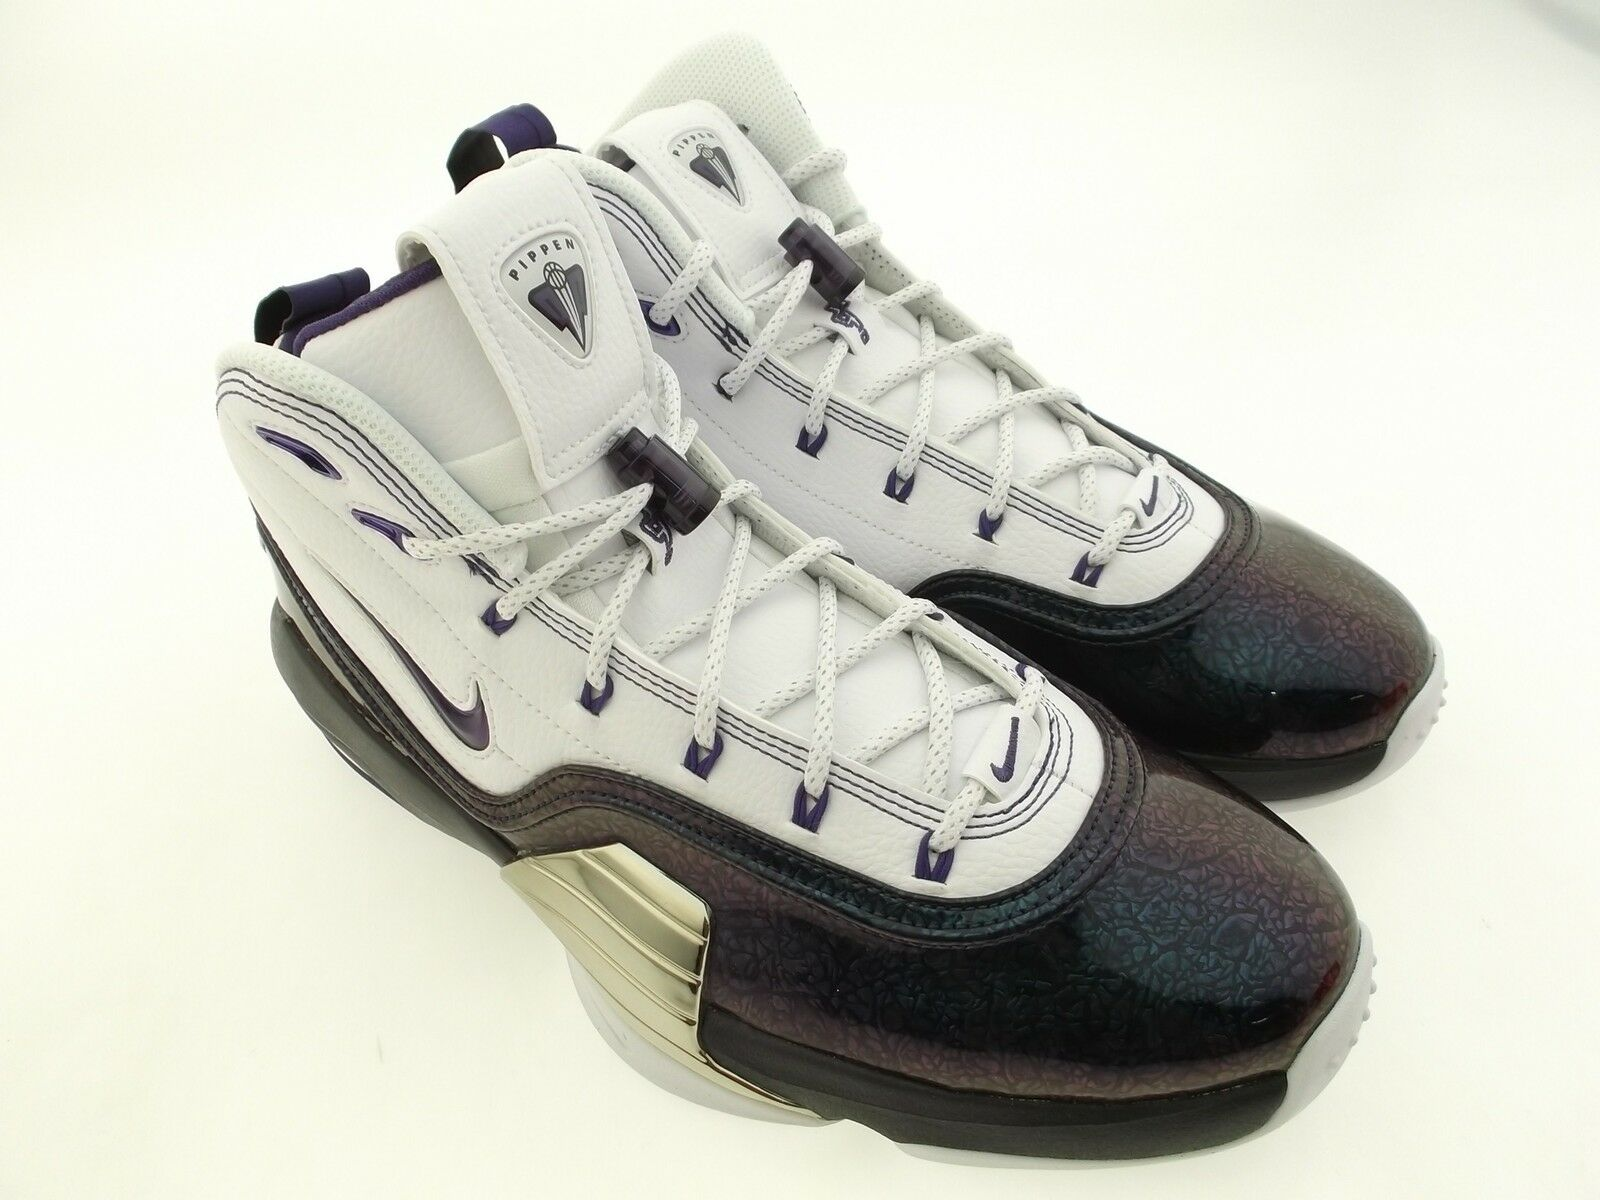 705065-151 Nike Men Pippen 6 white purple black